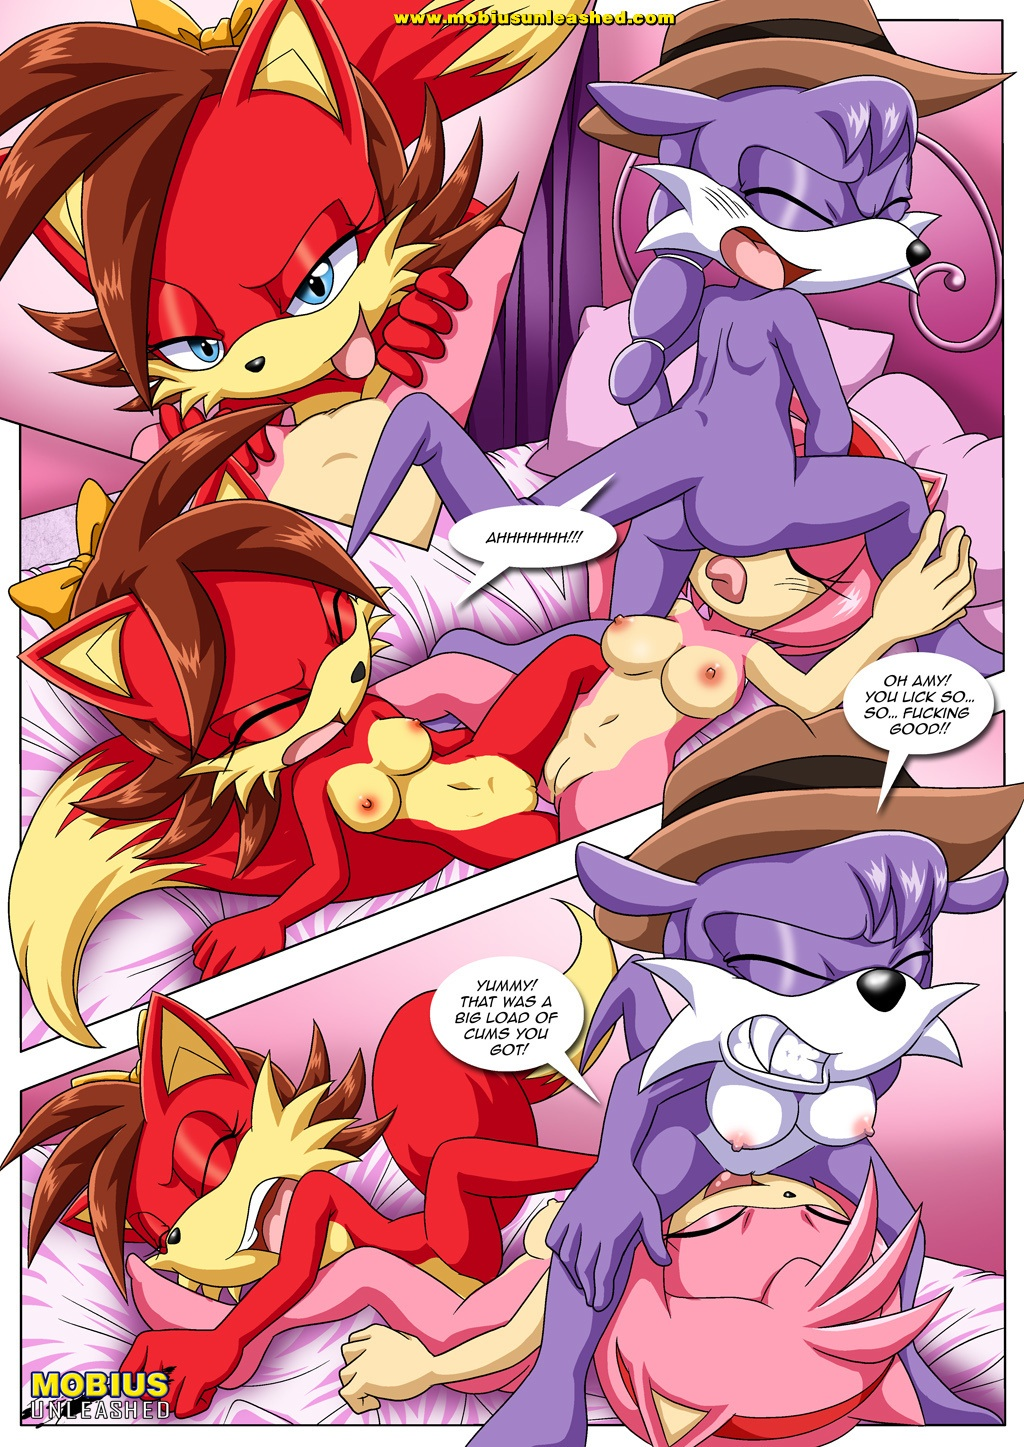 amy's_secret amy_rose barefoot fiona_fox lesbian licking mobius_unleashed nic_the_weasel pussy sega sex sonic sonic_(series) sonic_team text